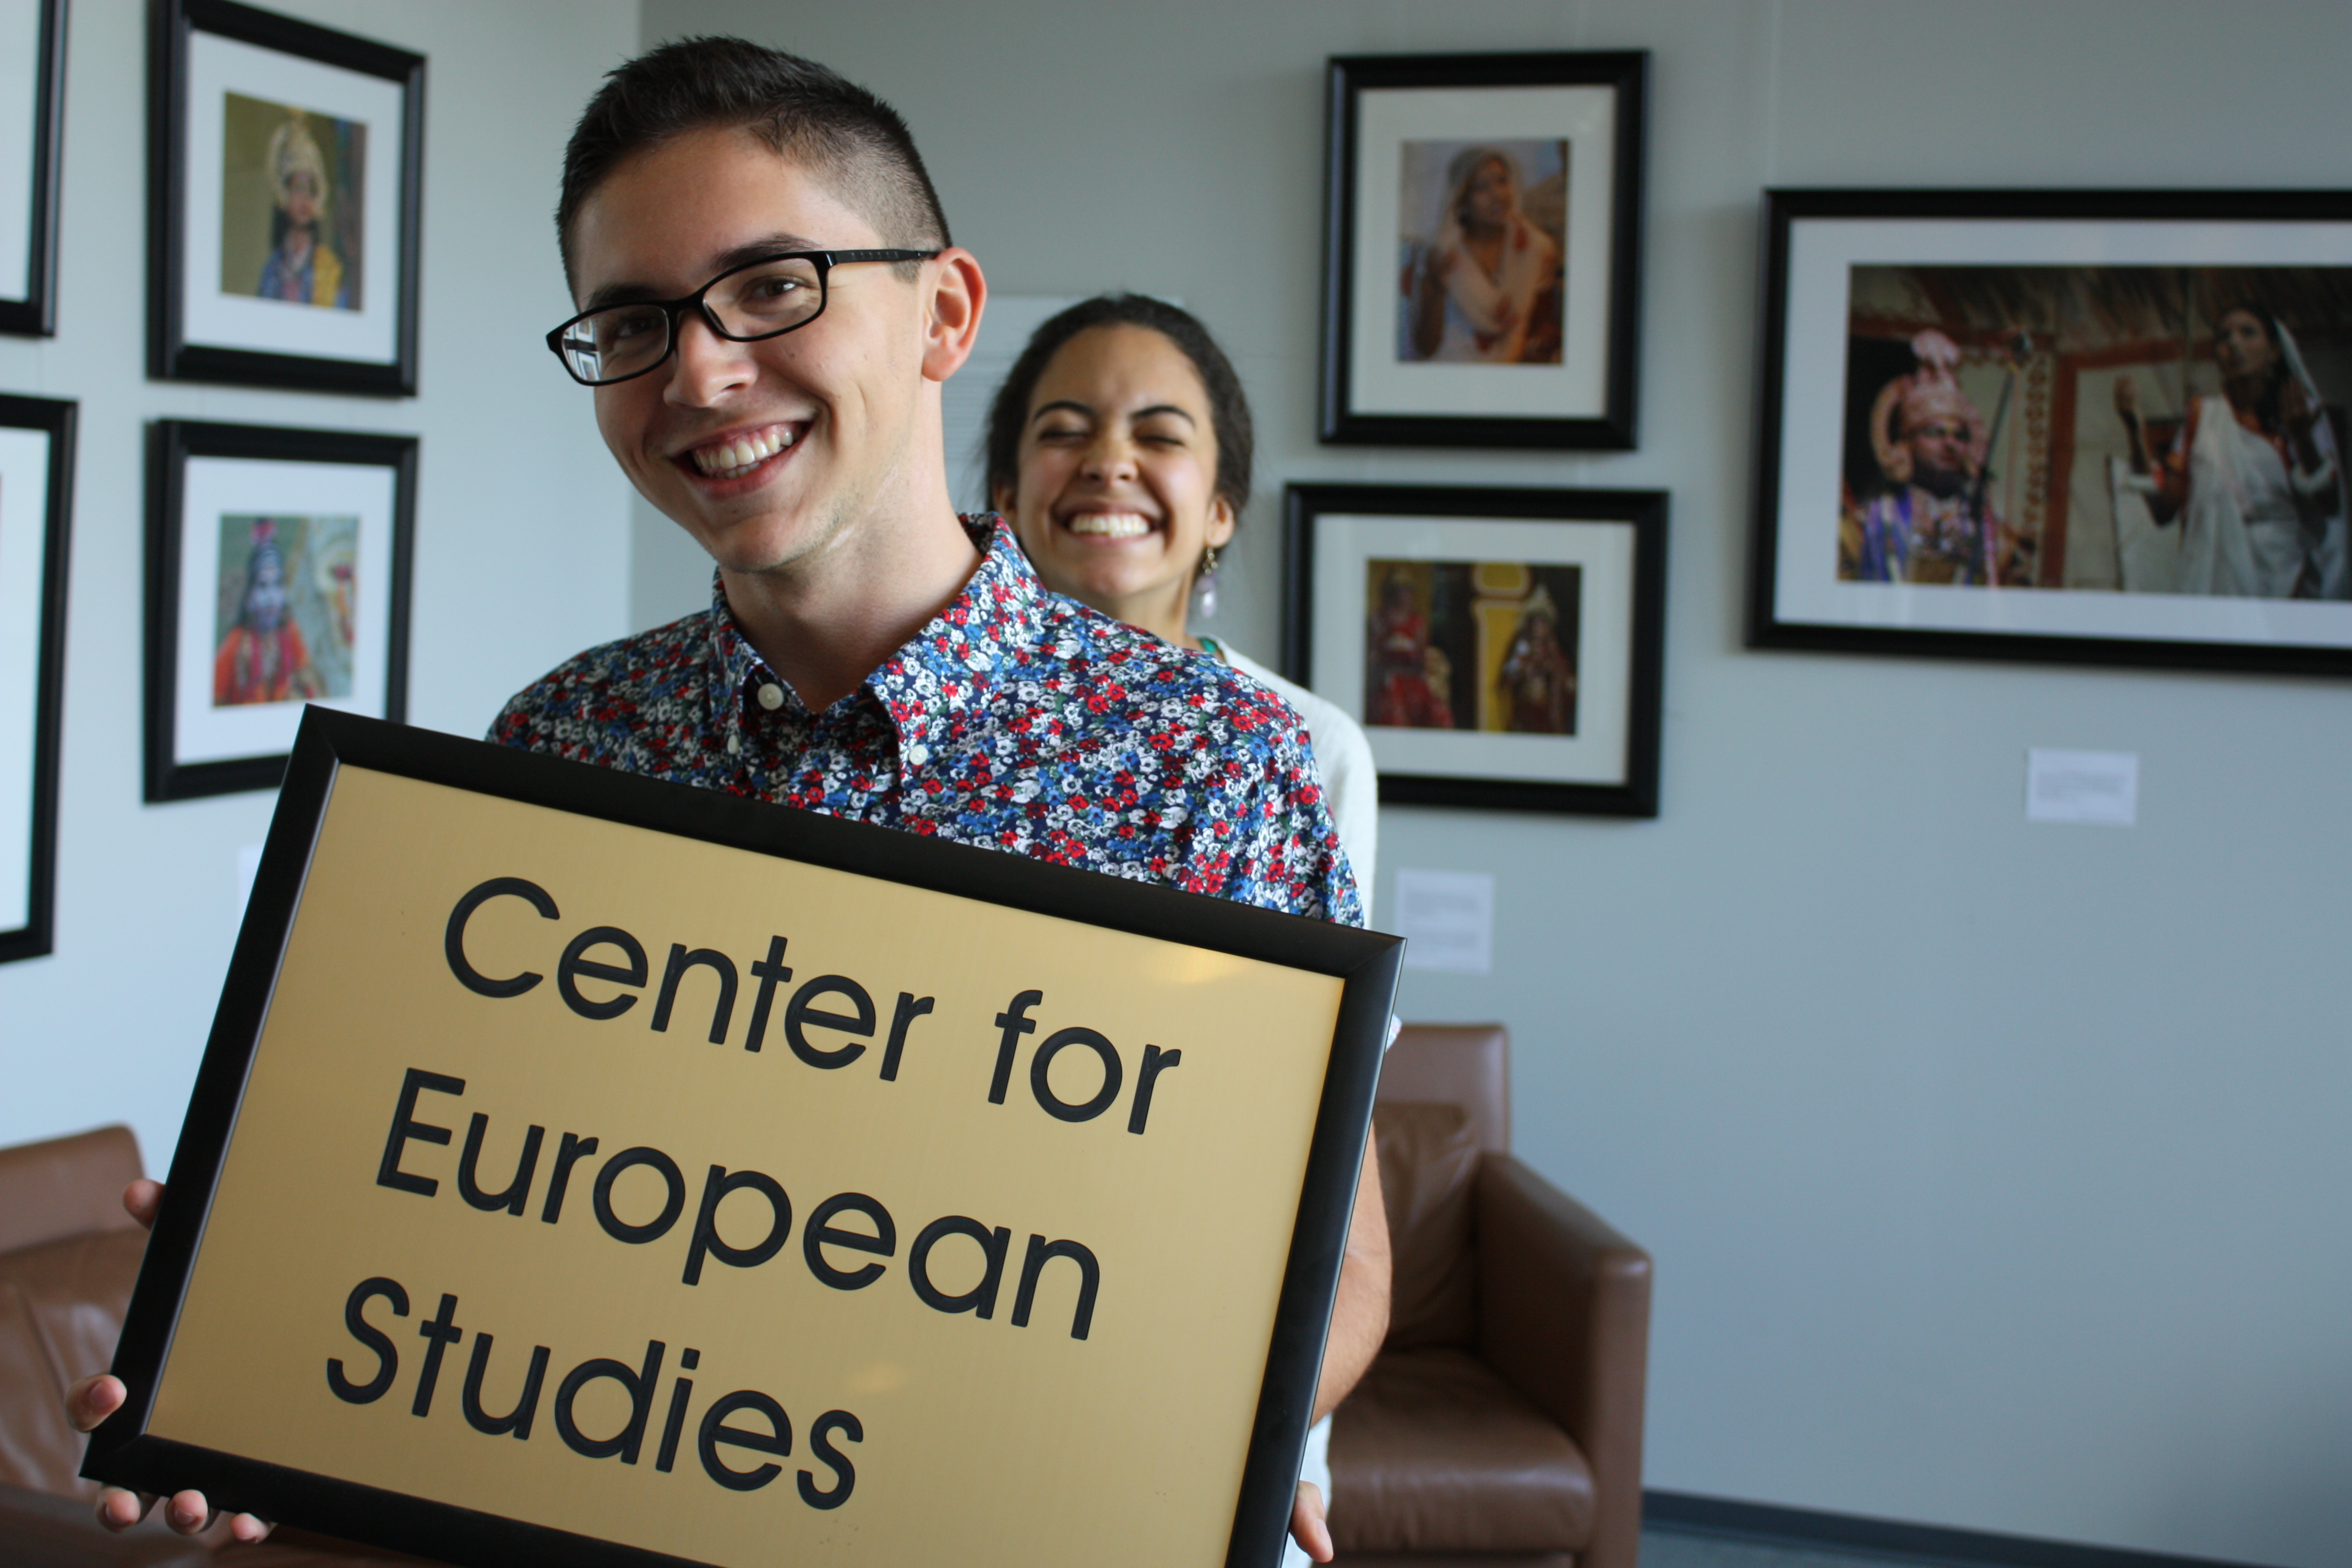 A student holds a picture with the Center for European Studies on it.